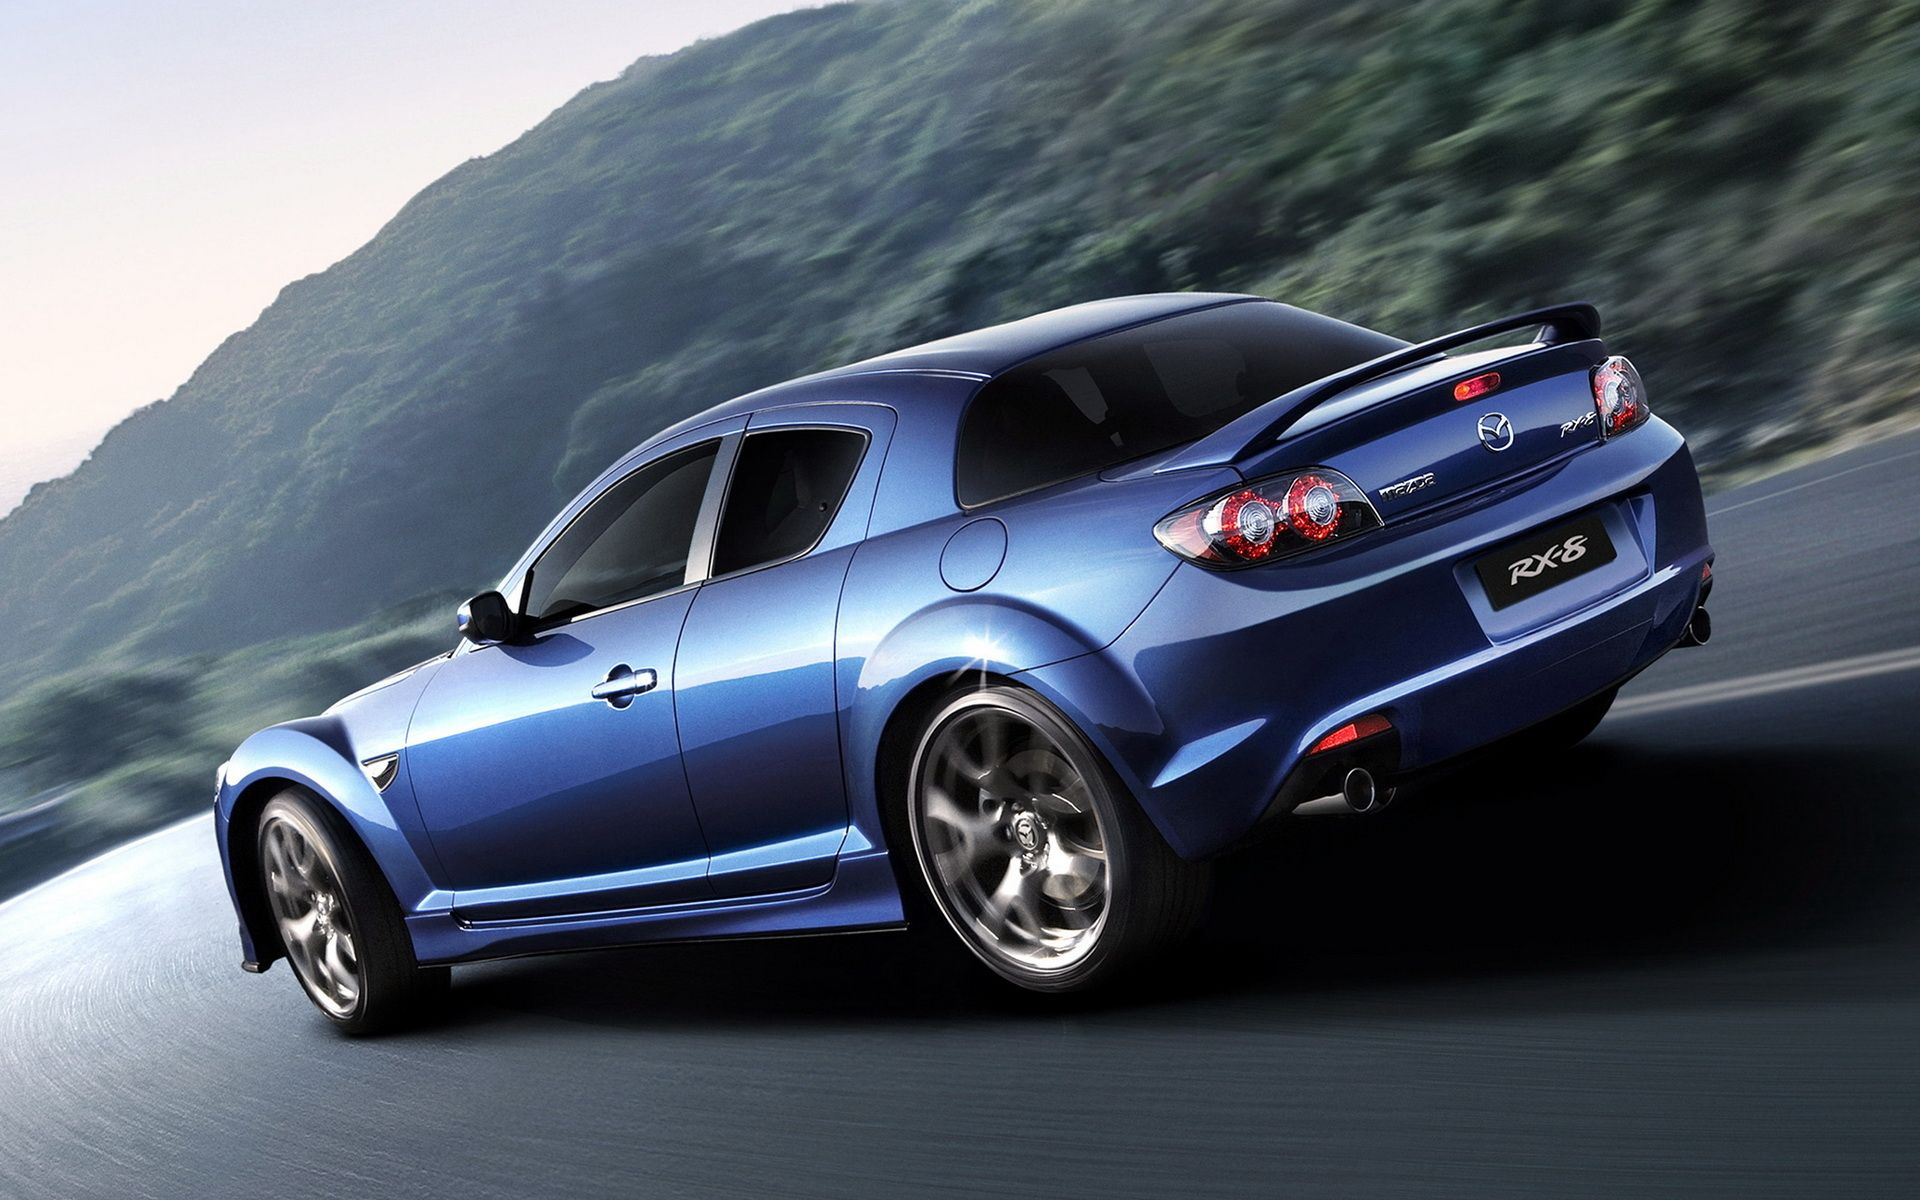 Mazda Rx8 Wallpapers Find Best Latest Mazda Rx8 Wallpapers For Your